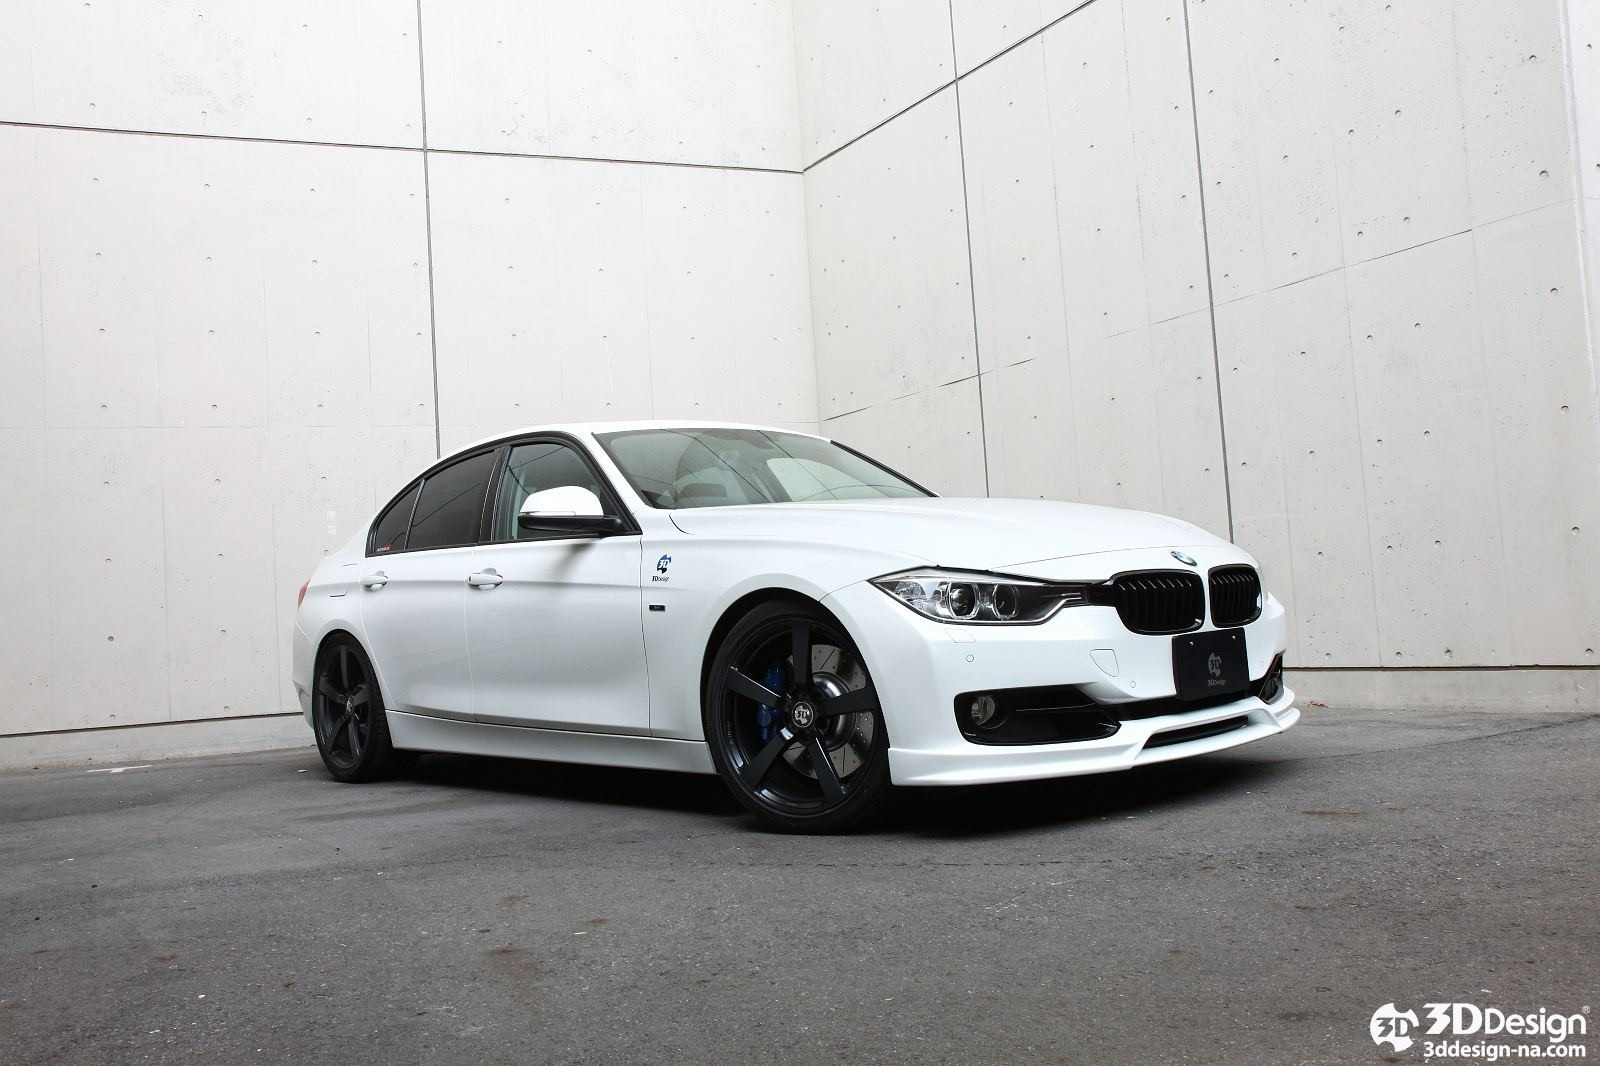 3d Design Offers Aero Kit For F30 Bmw 3 Series Forcegt Com